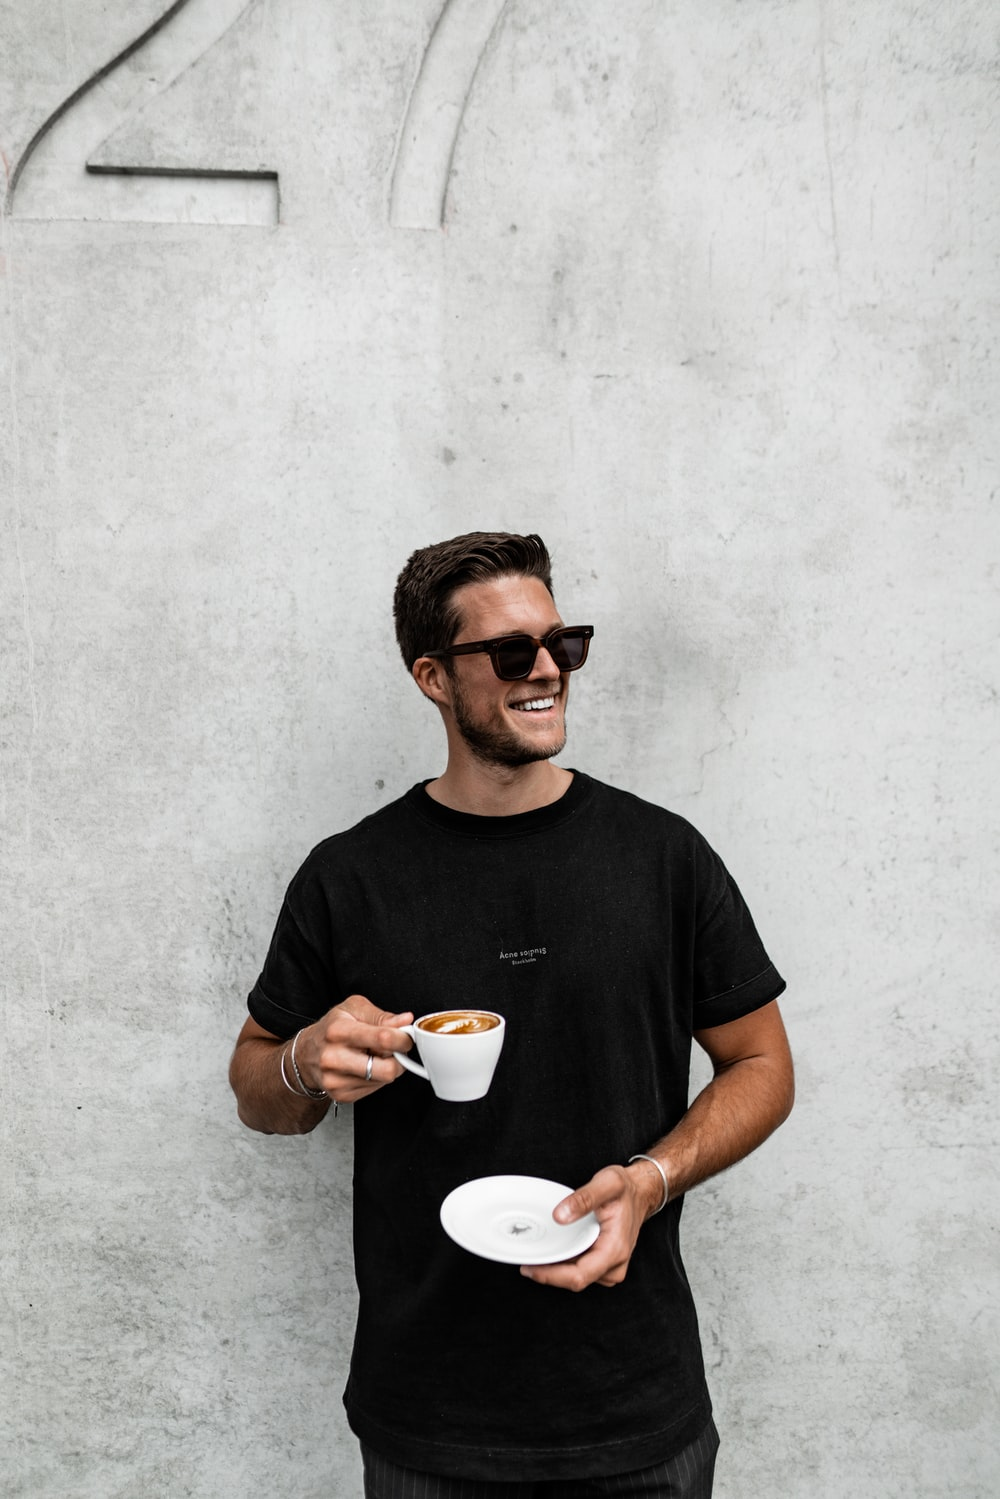 man in black crew neck t-shirt holding white ceramic mug